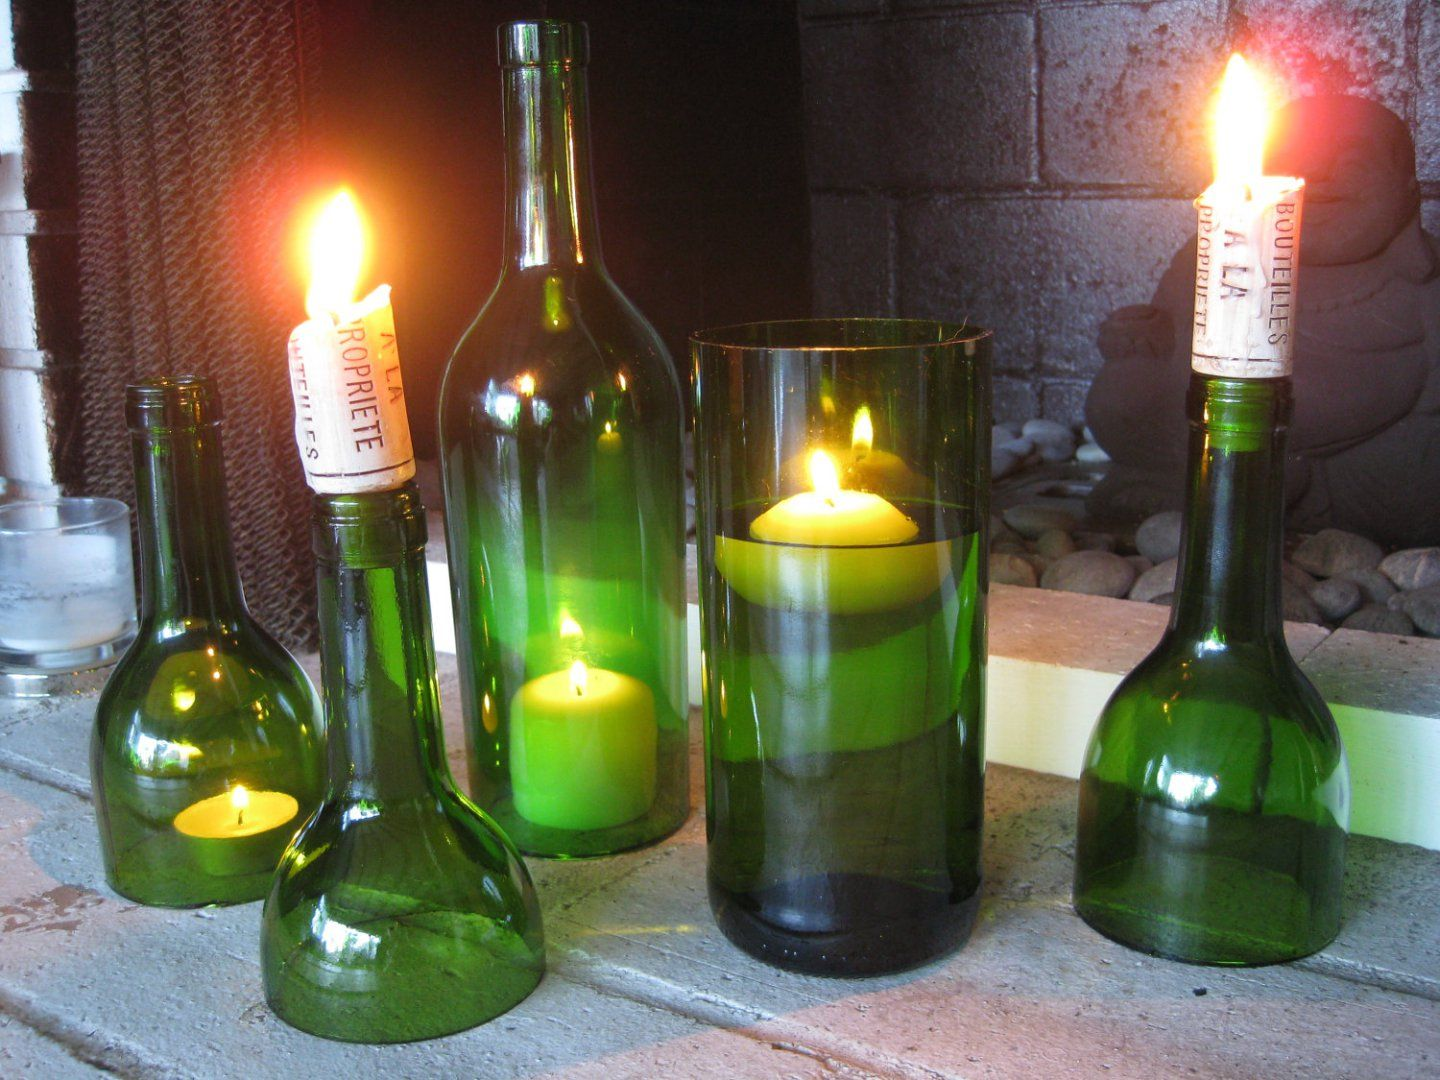 Diy wine bottle candles easy diy instructions on how to make your diy wine bottle candles easy diy instructions on how to make your own solutioingenieria Images